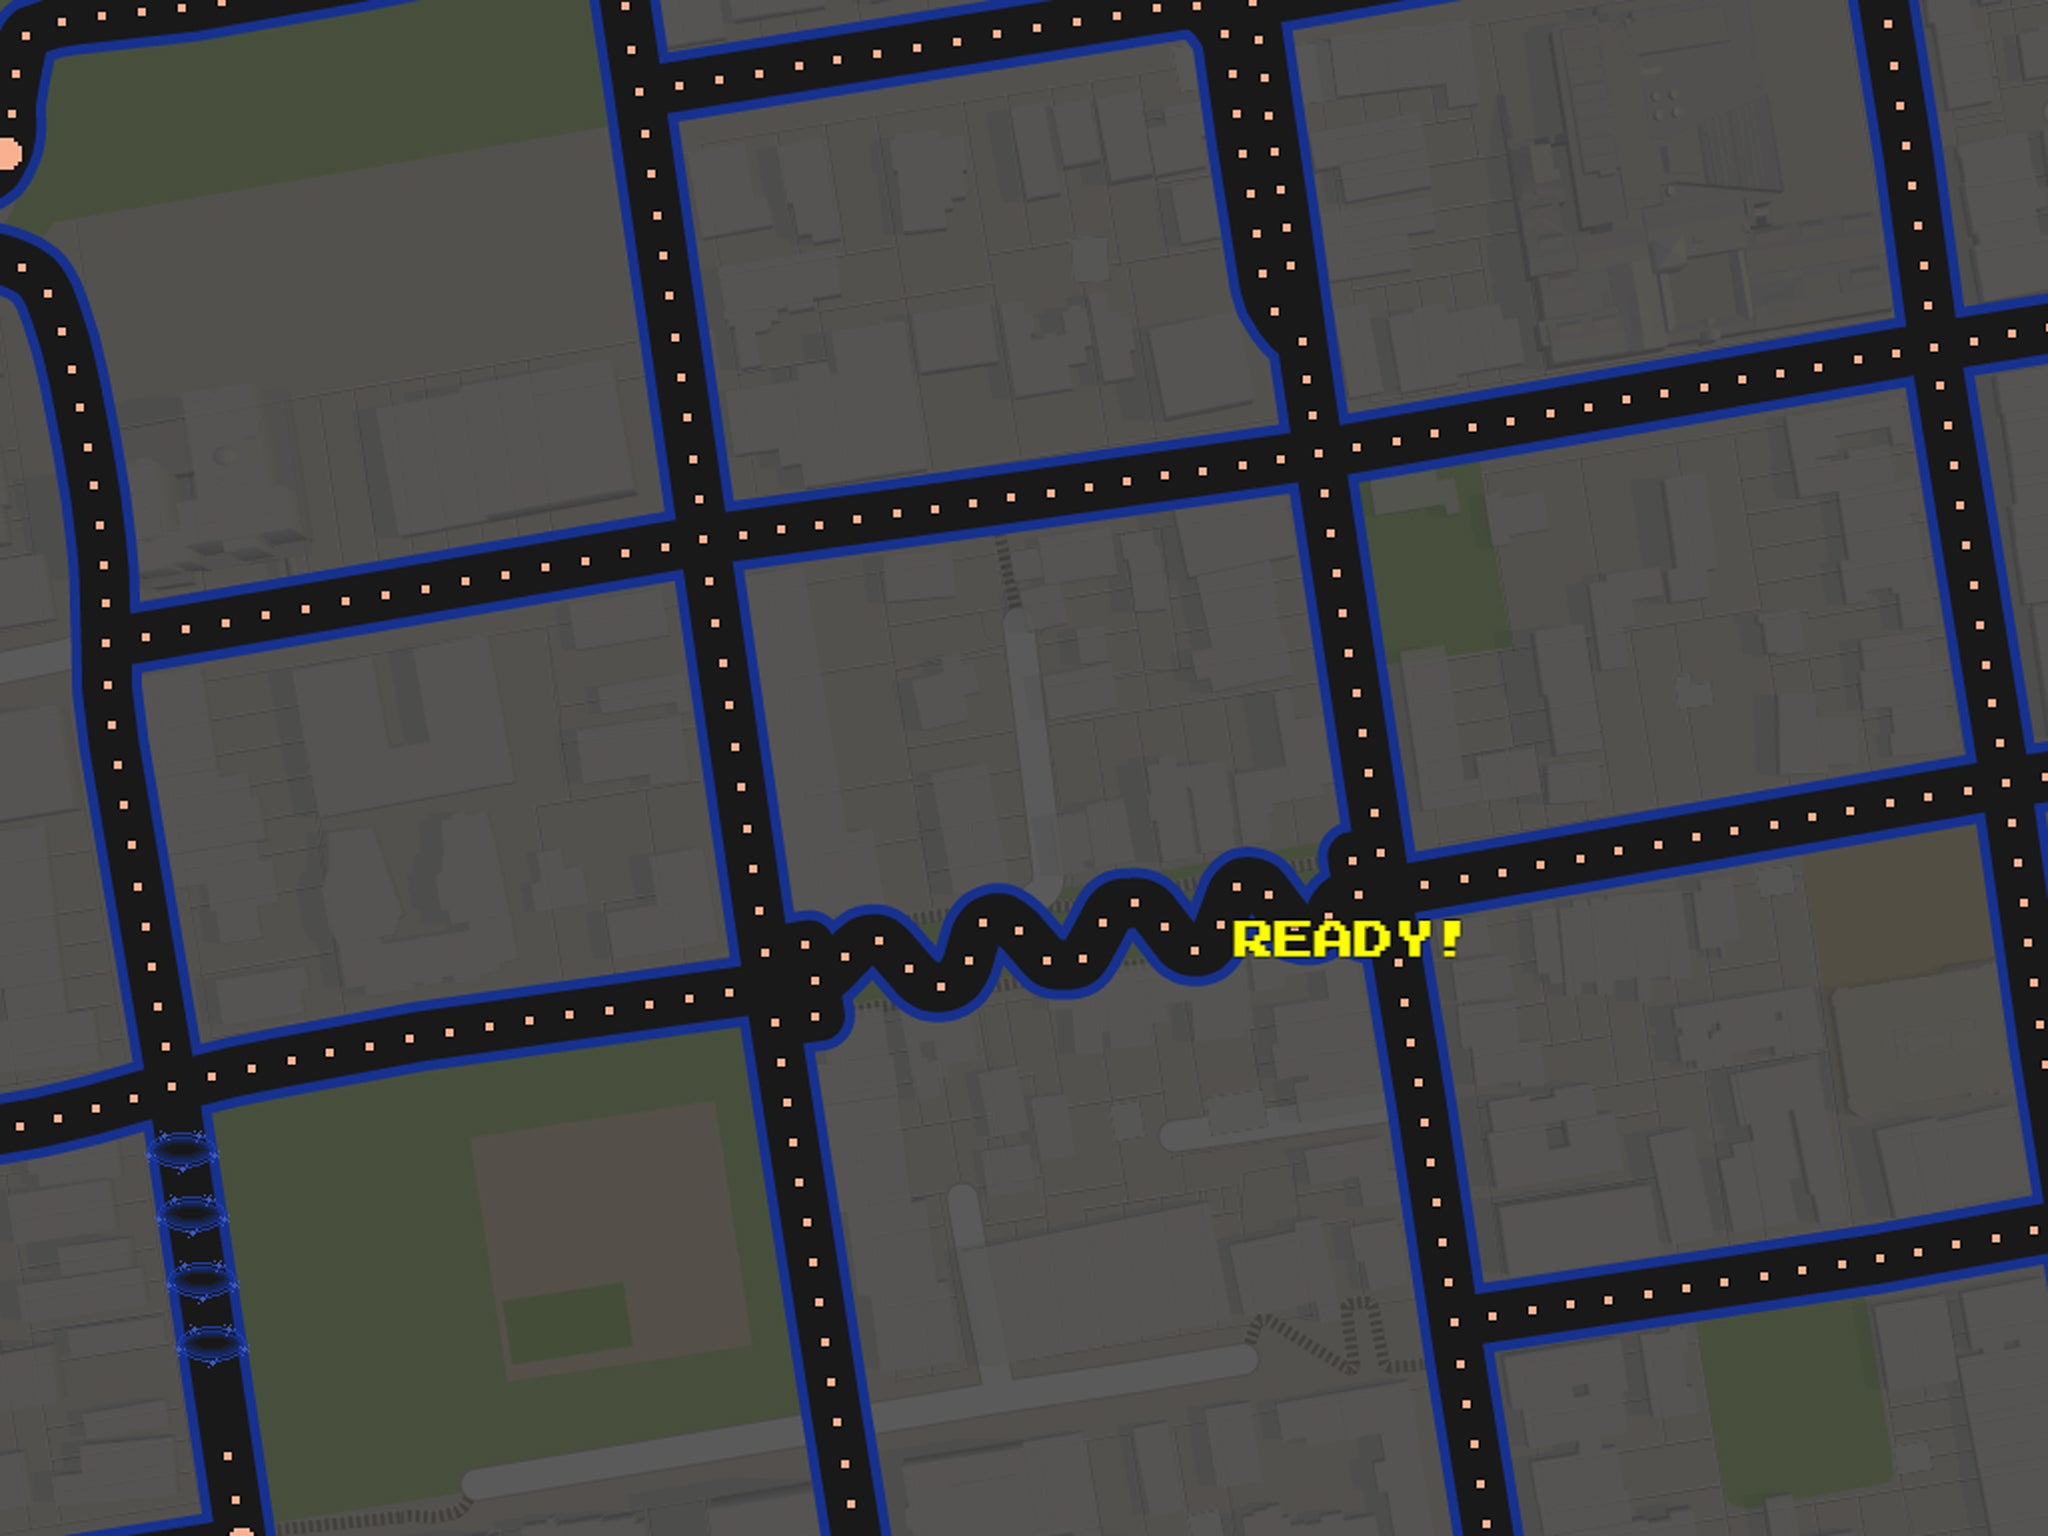 google maps pacman company offers chance to play arcade classic Google Maps Pacman Disable google maps pacman company offers chance to play arcade classic on streets around the world the independent google maps pacman disabled